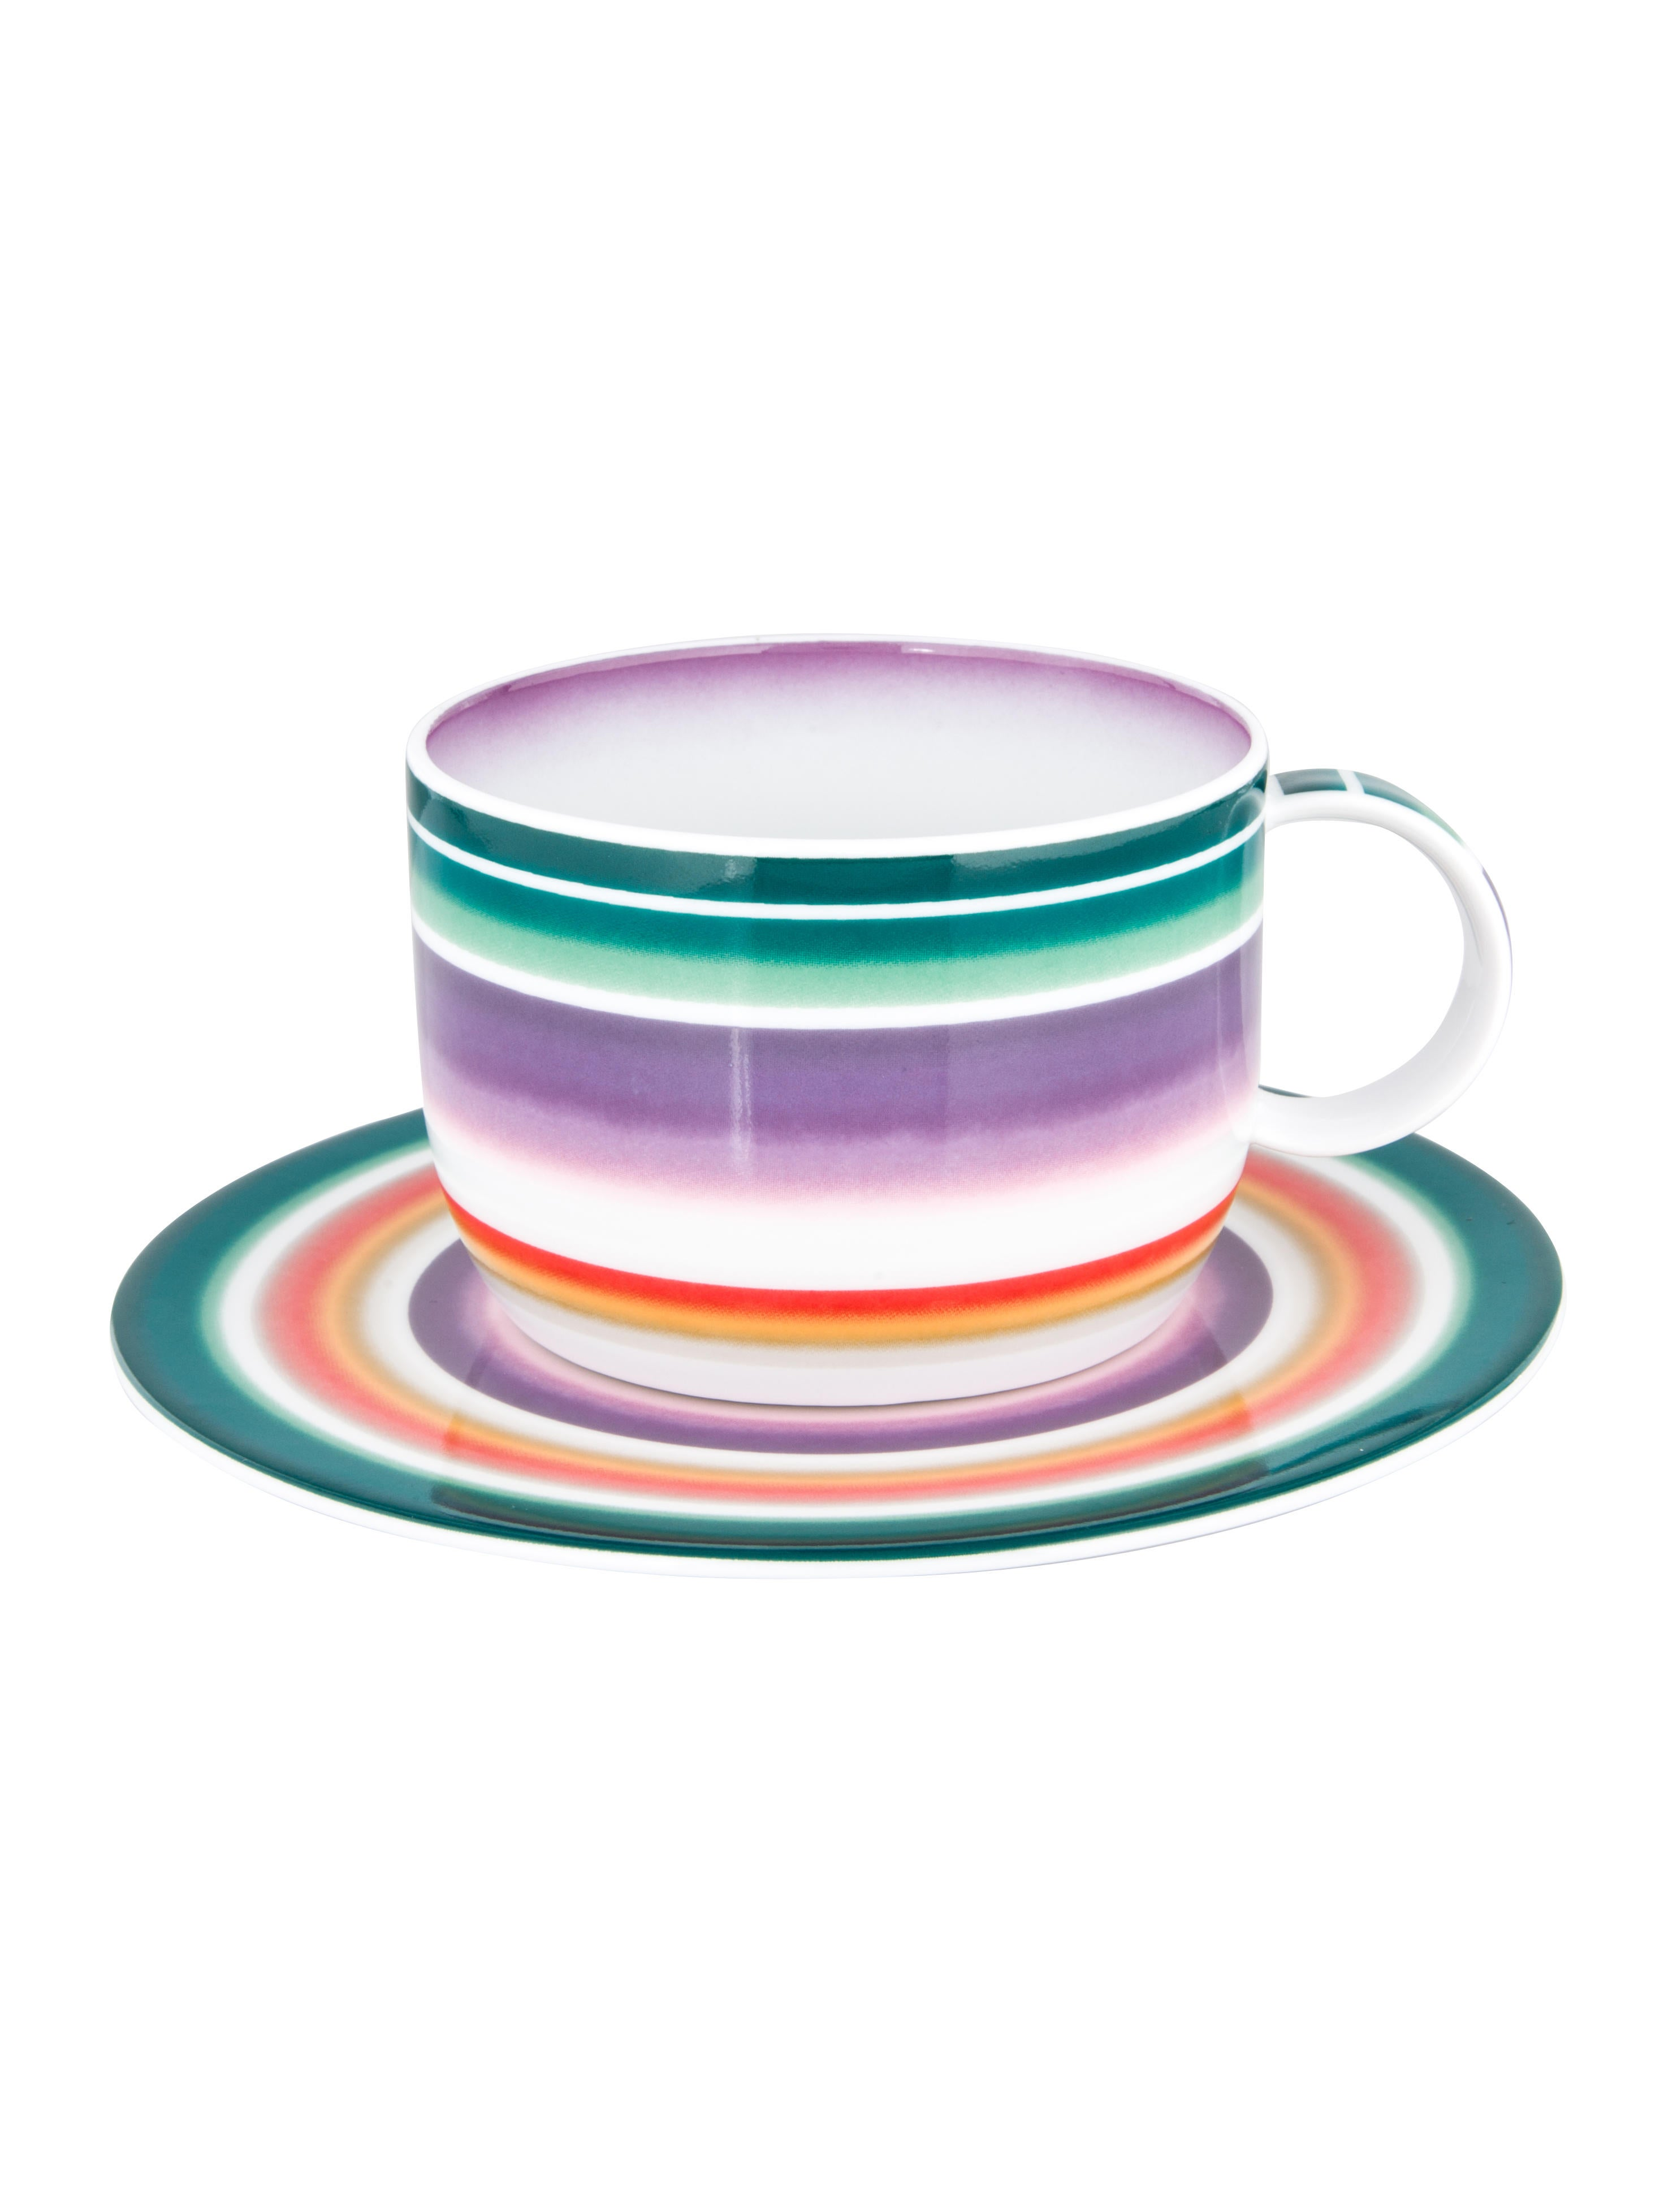 Zig Zag Cup u0026 Saucer w/ Tags  sc 1 st  The RealReal & Missoni Zig Zag Cup u0026 Saucer w/ Tags - Tabletop And Kitchen ...